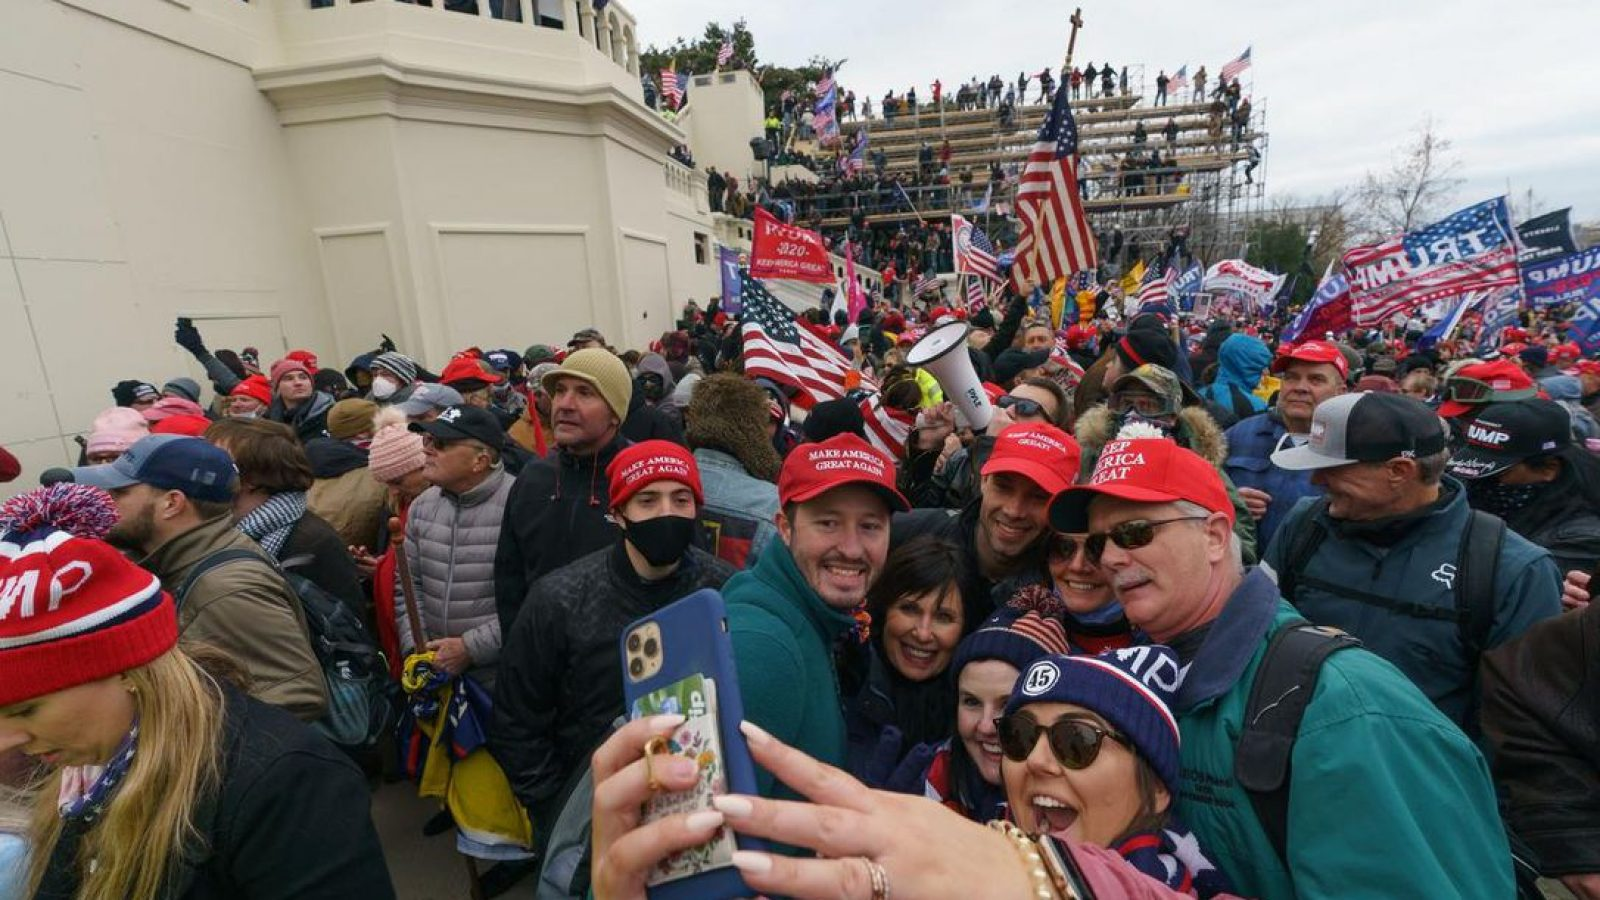 A large crowd of rioters, many wearing red MAGA hats, crowd and take selfies in front of the Capitol steps.